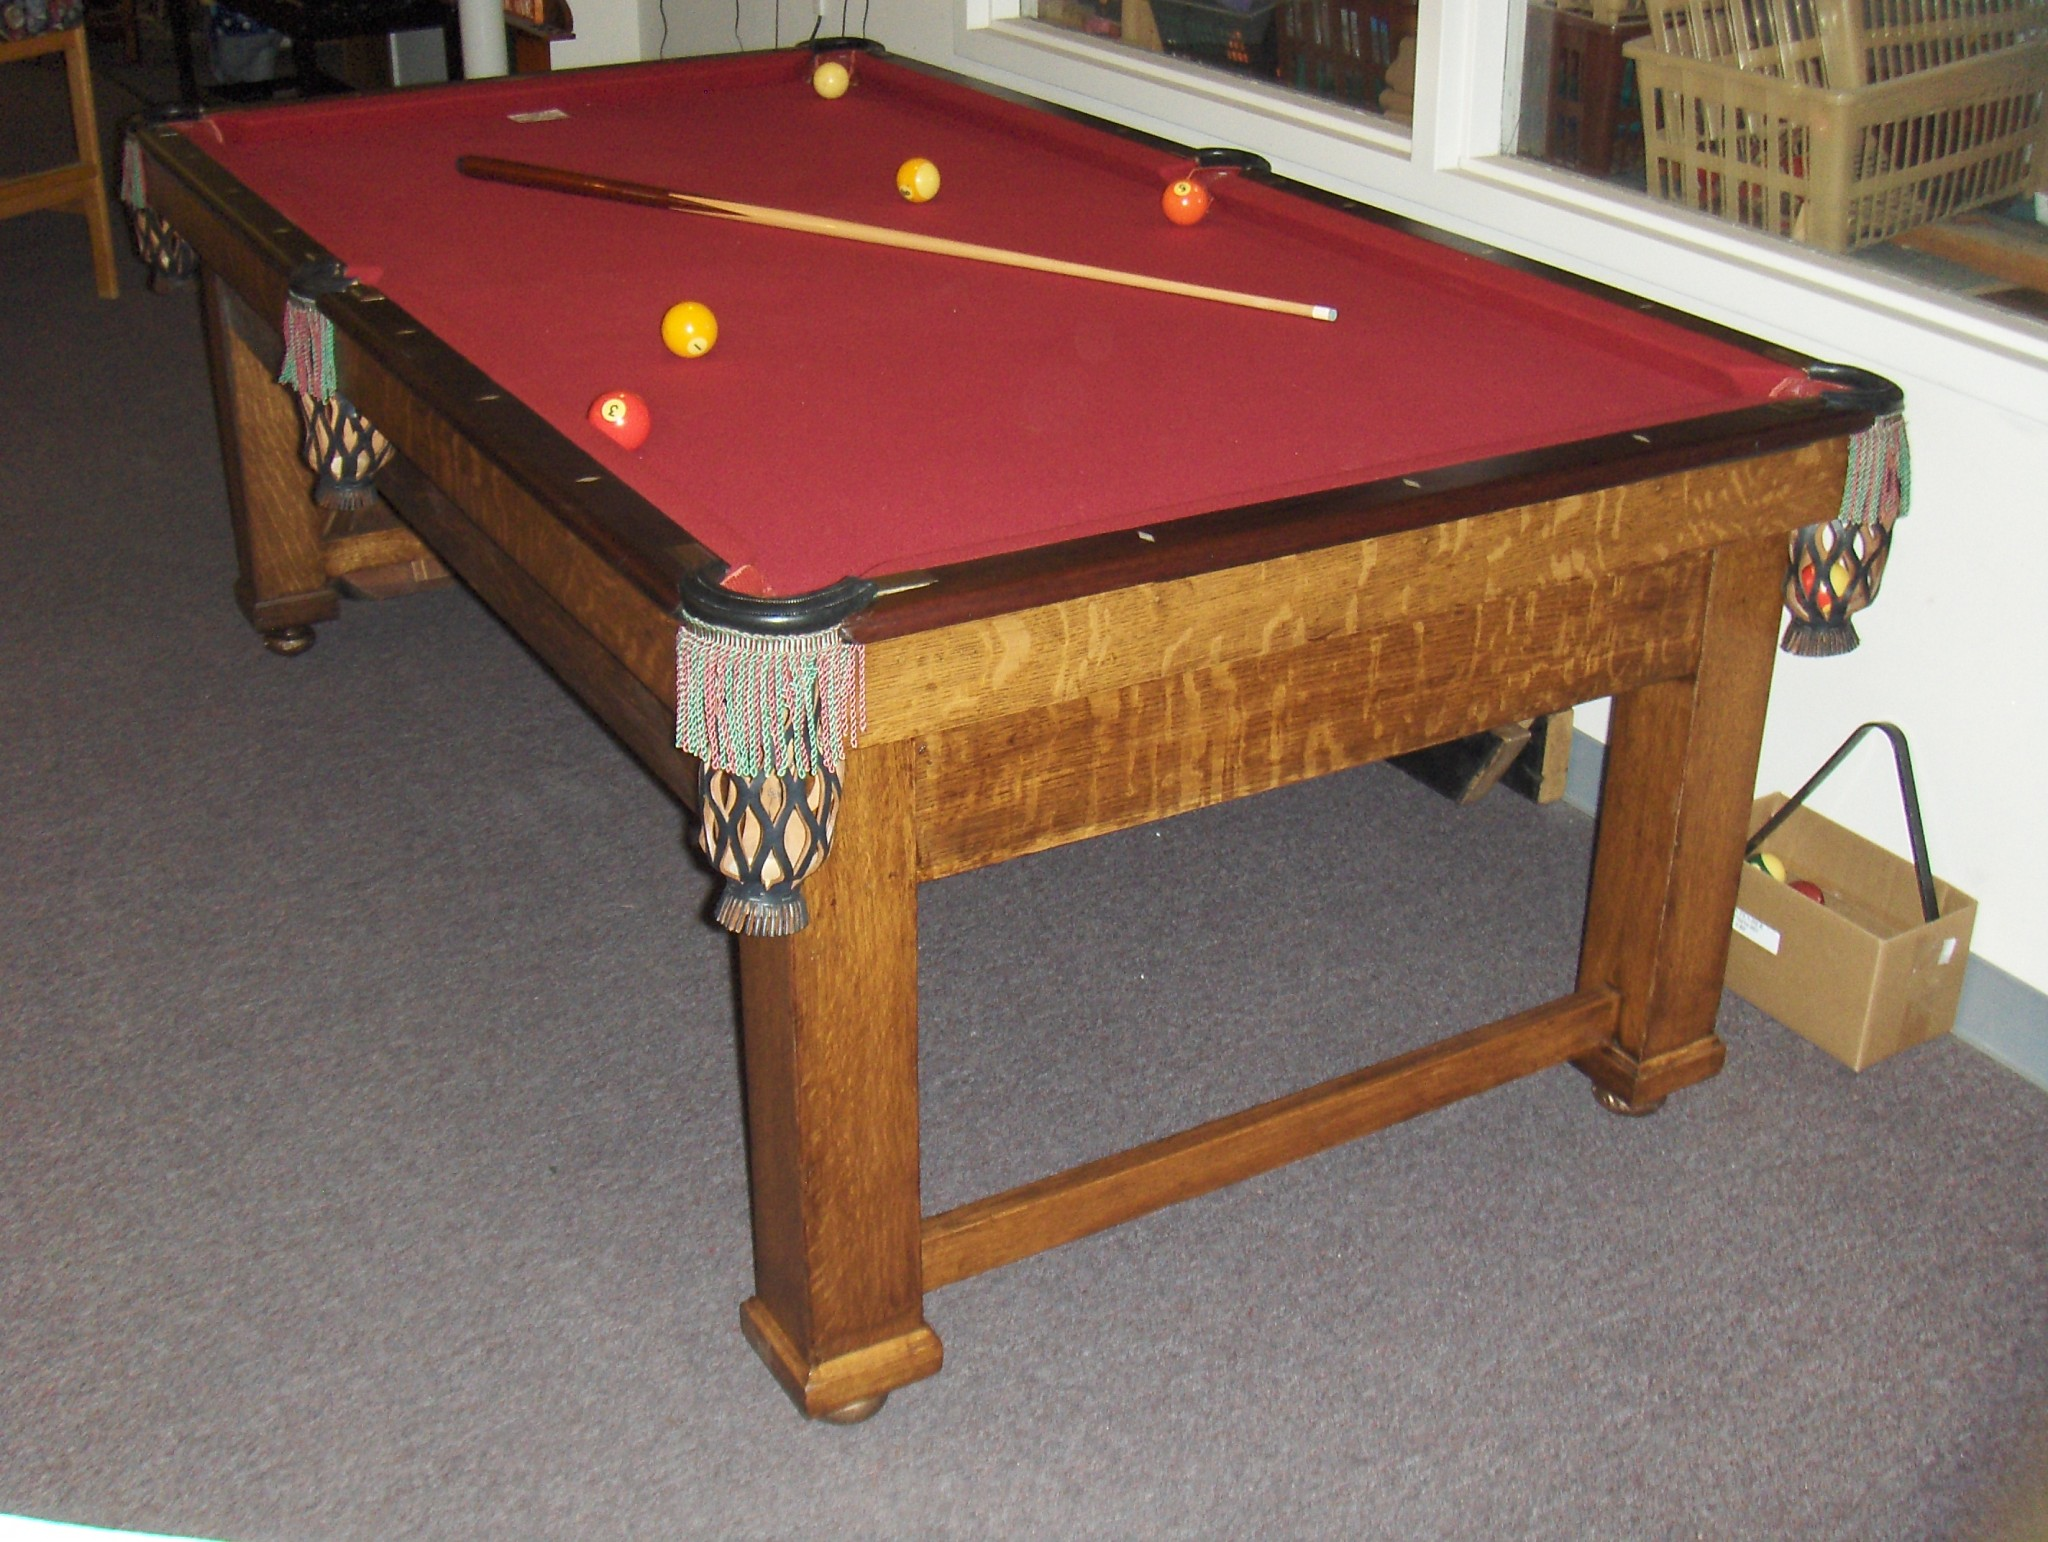 Brunswick X Parlor Table Cagles Billiards - 3 1 2 x 7 pool table